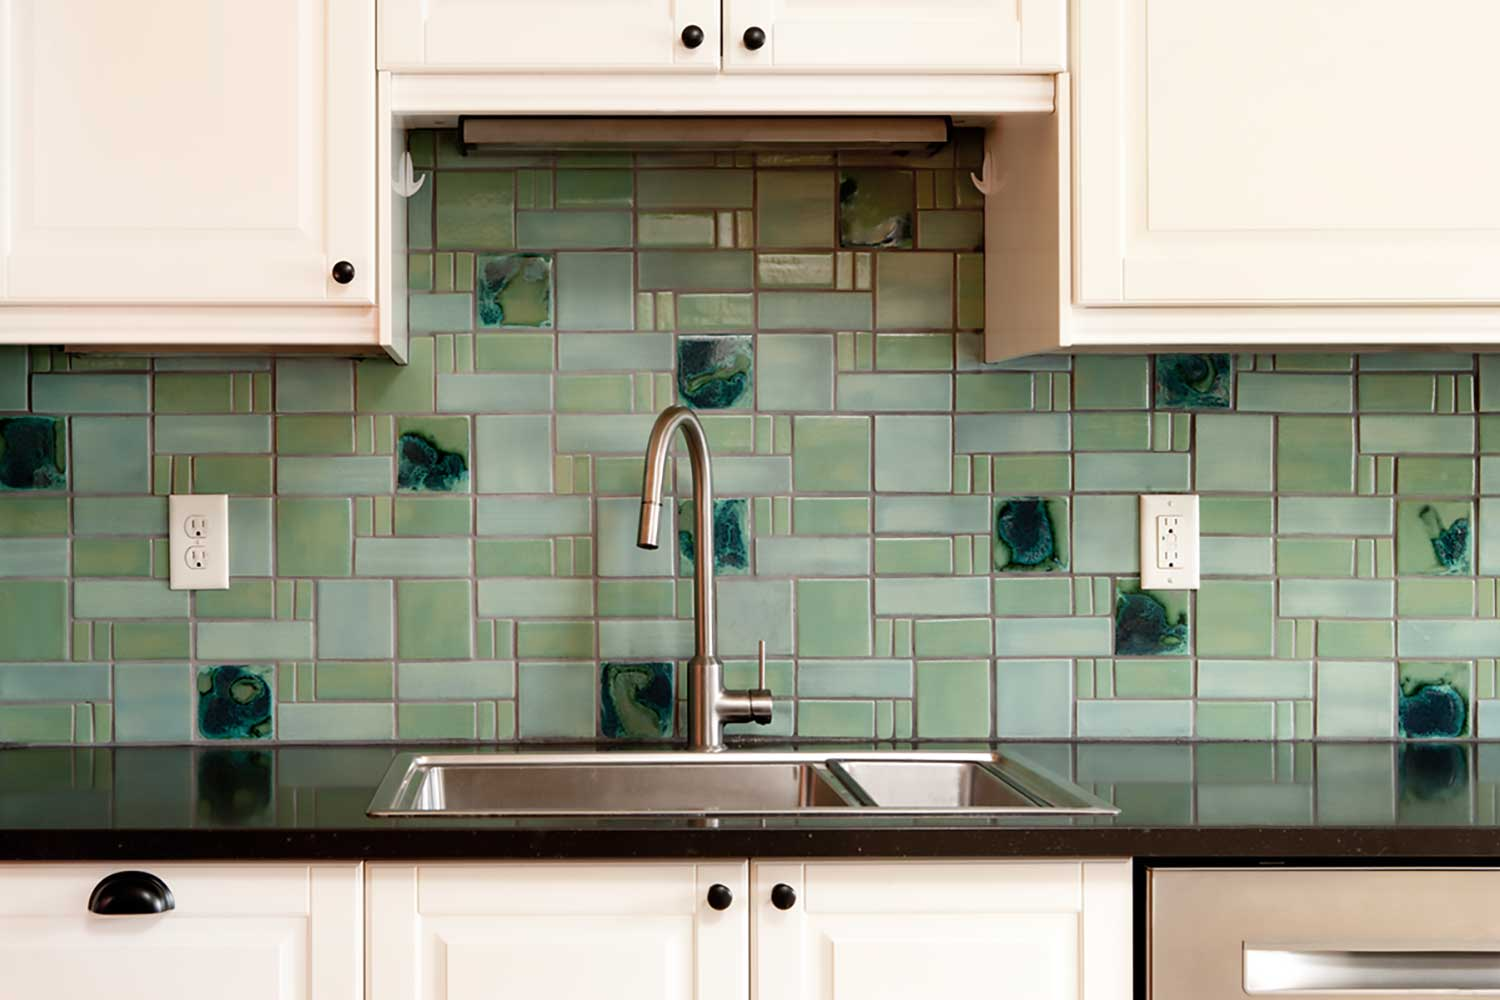 - Aquila Pattern Kitchen Handmade Mid Century Modern Tile Backsplash